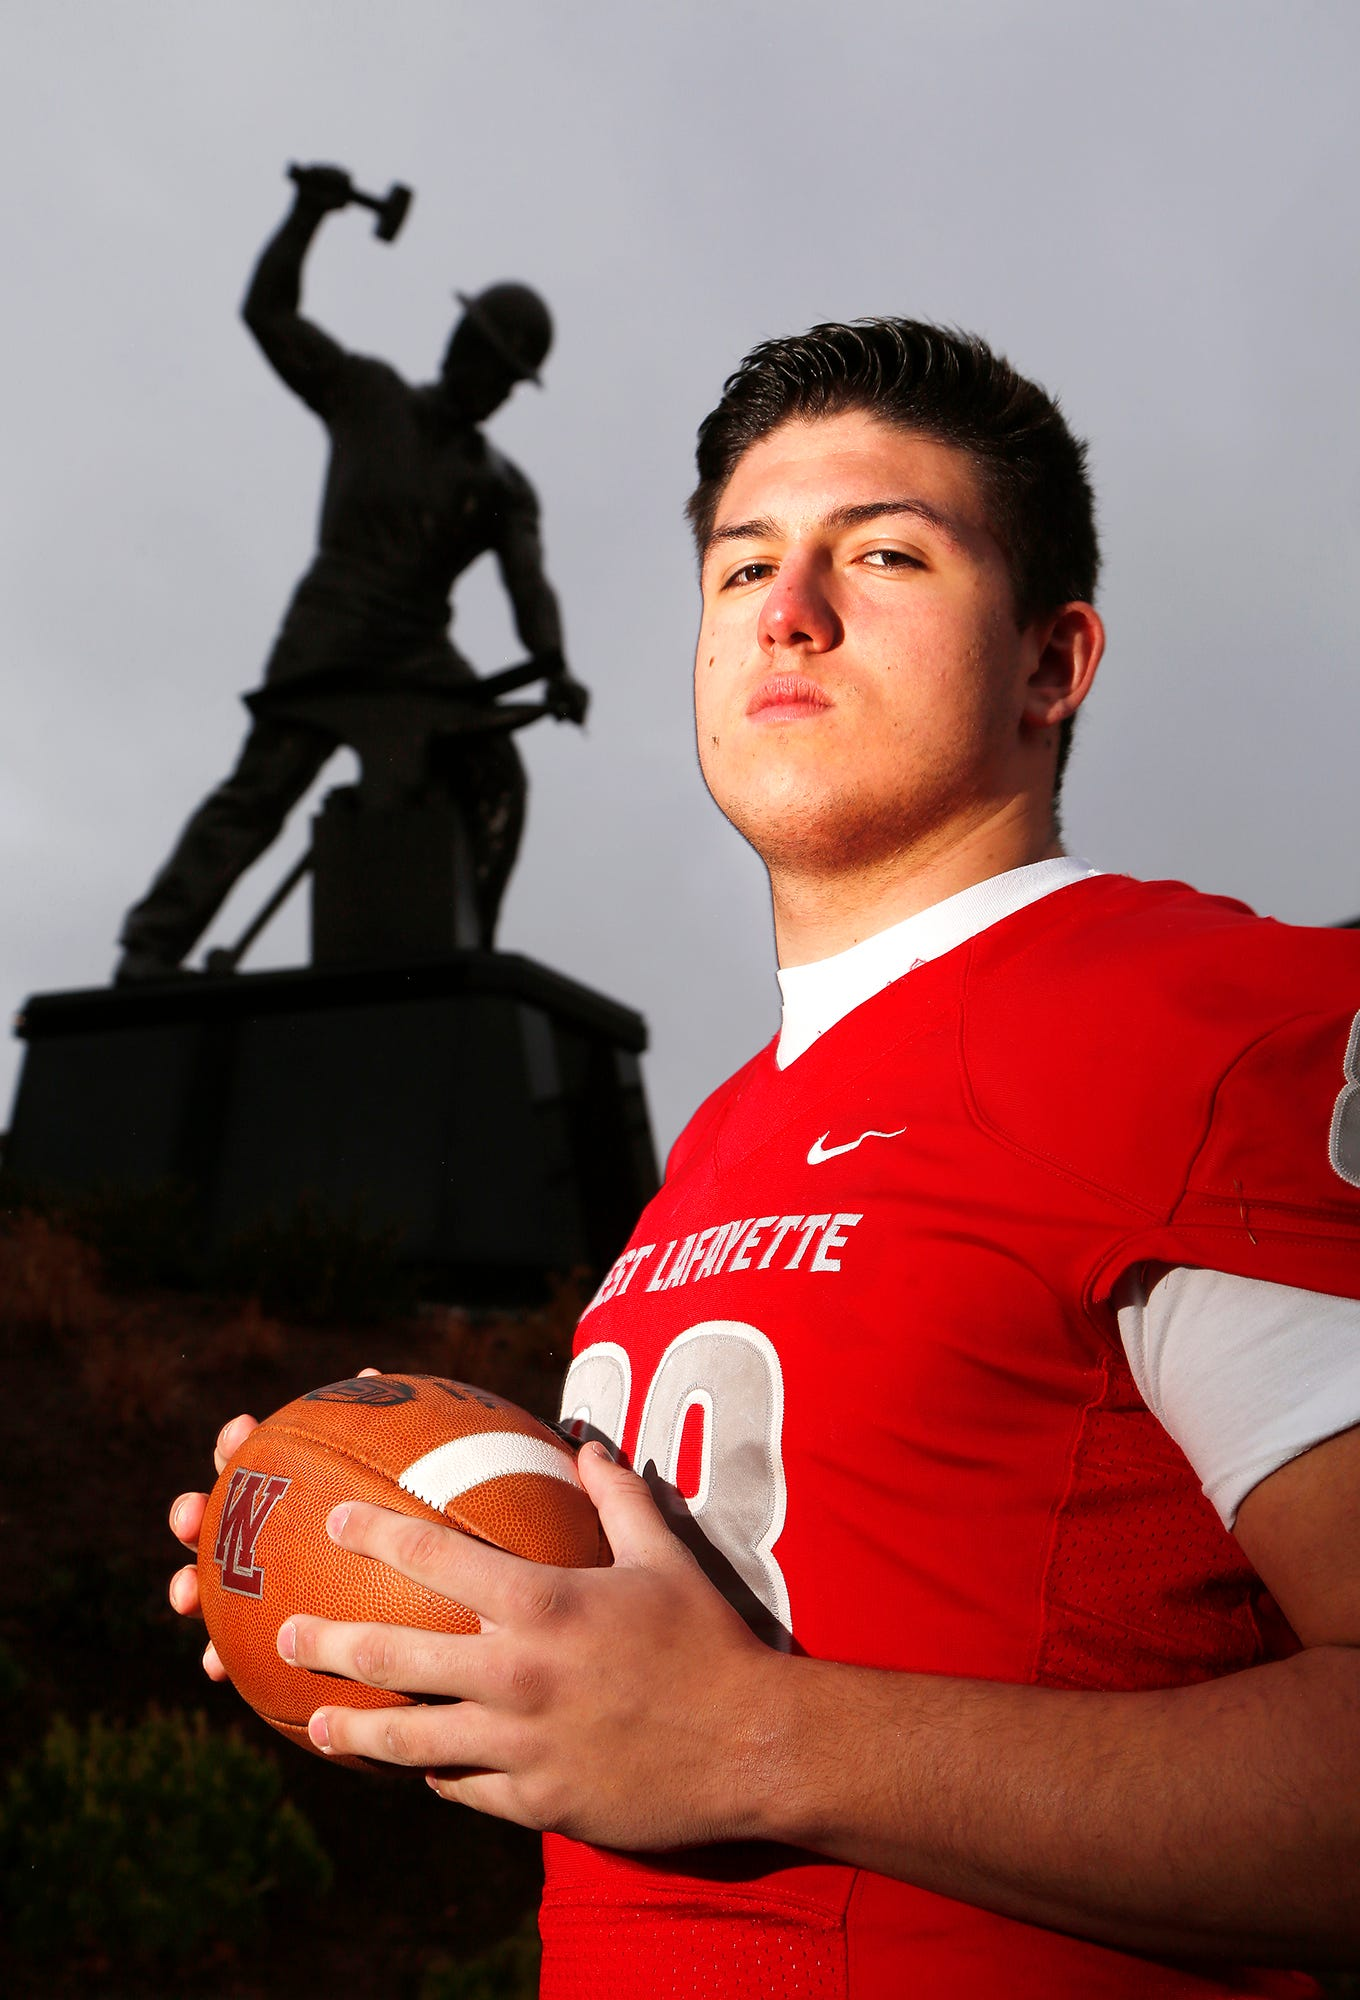 George Karlaftis added Indiana's Class 3A Player of the Year to a long list of postseason honors.